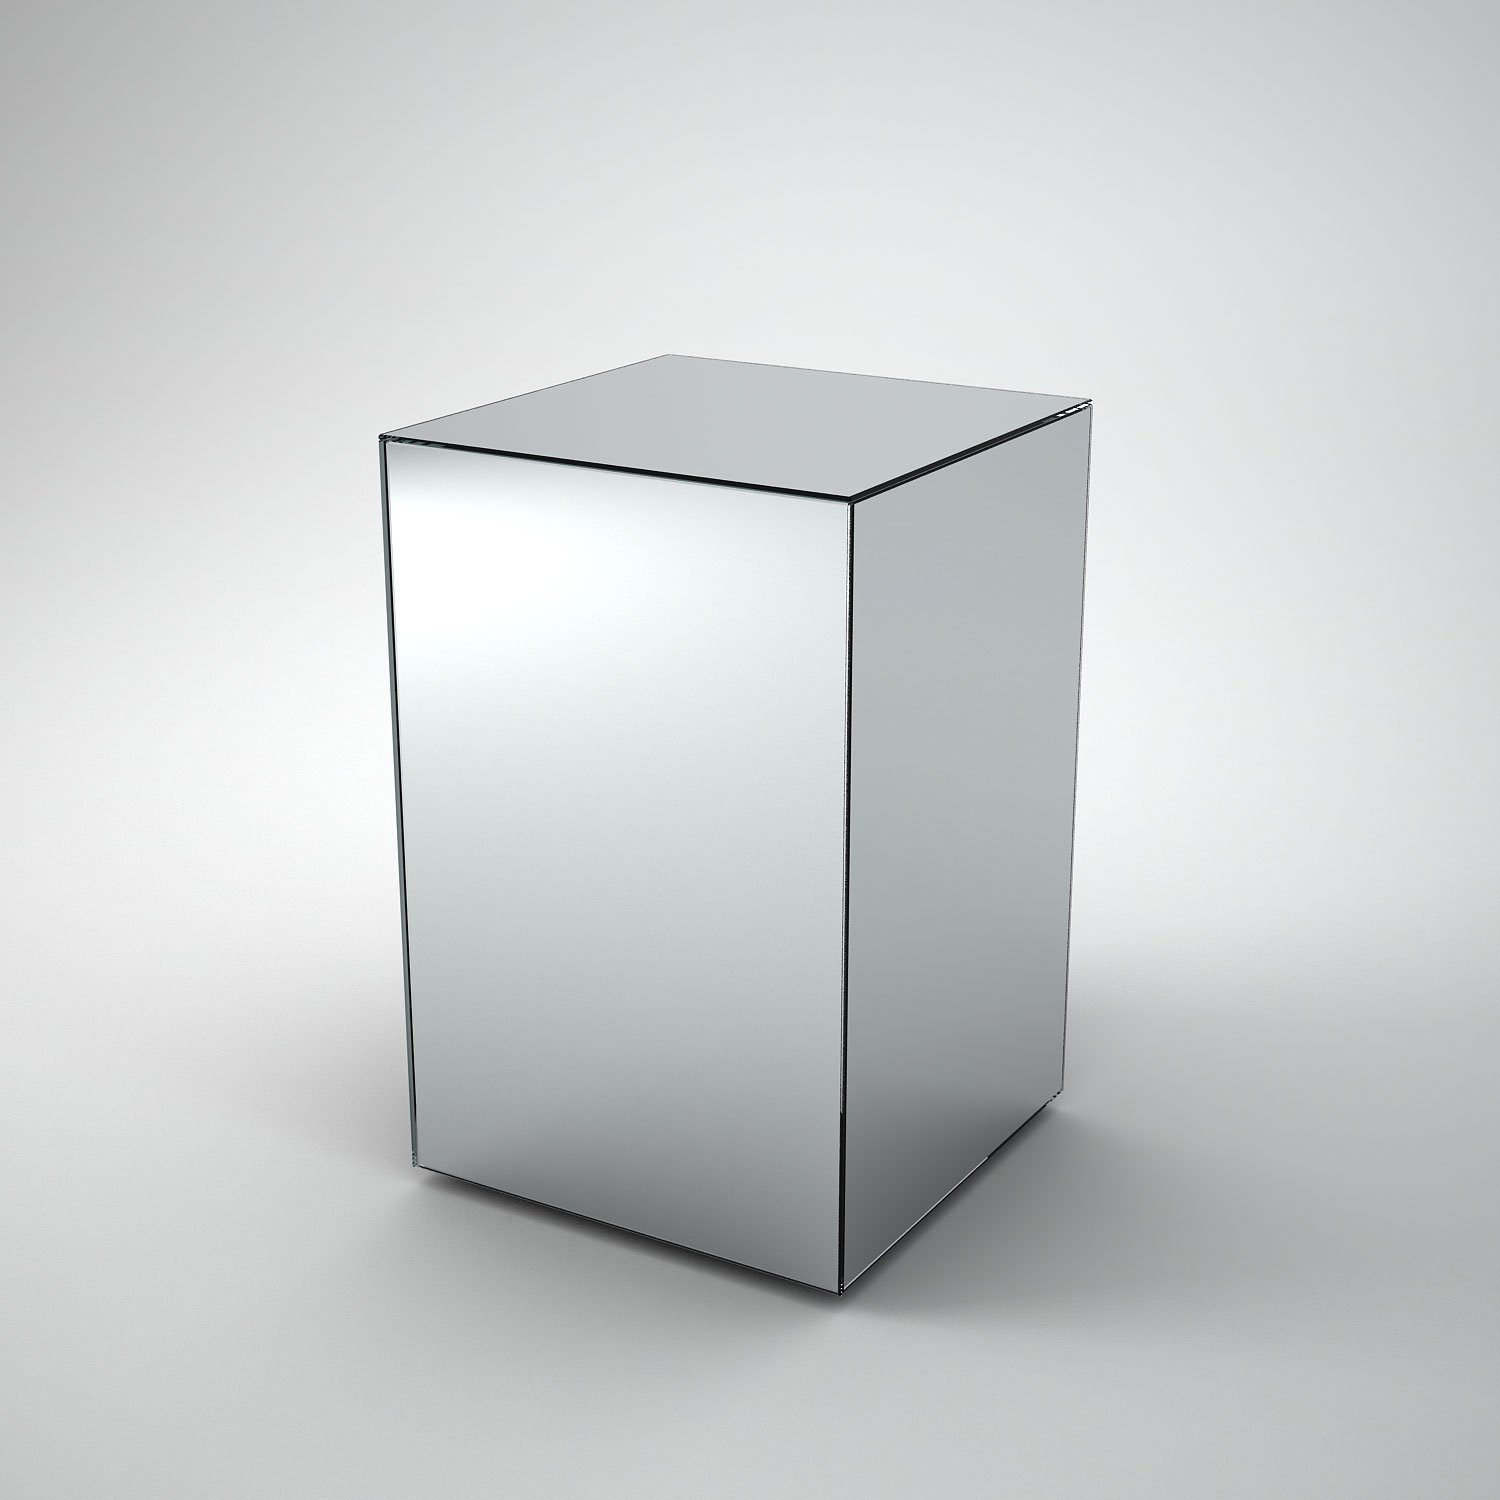 Mirrored Side Table by MirrorBox